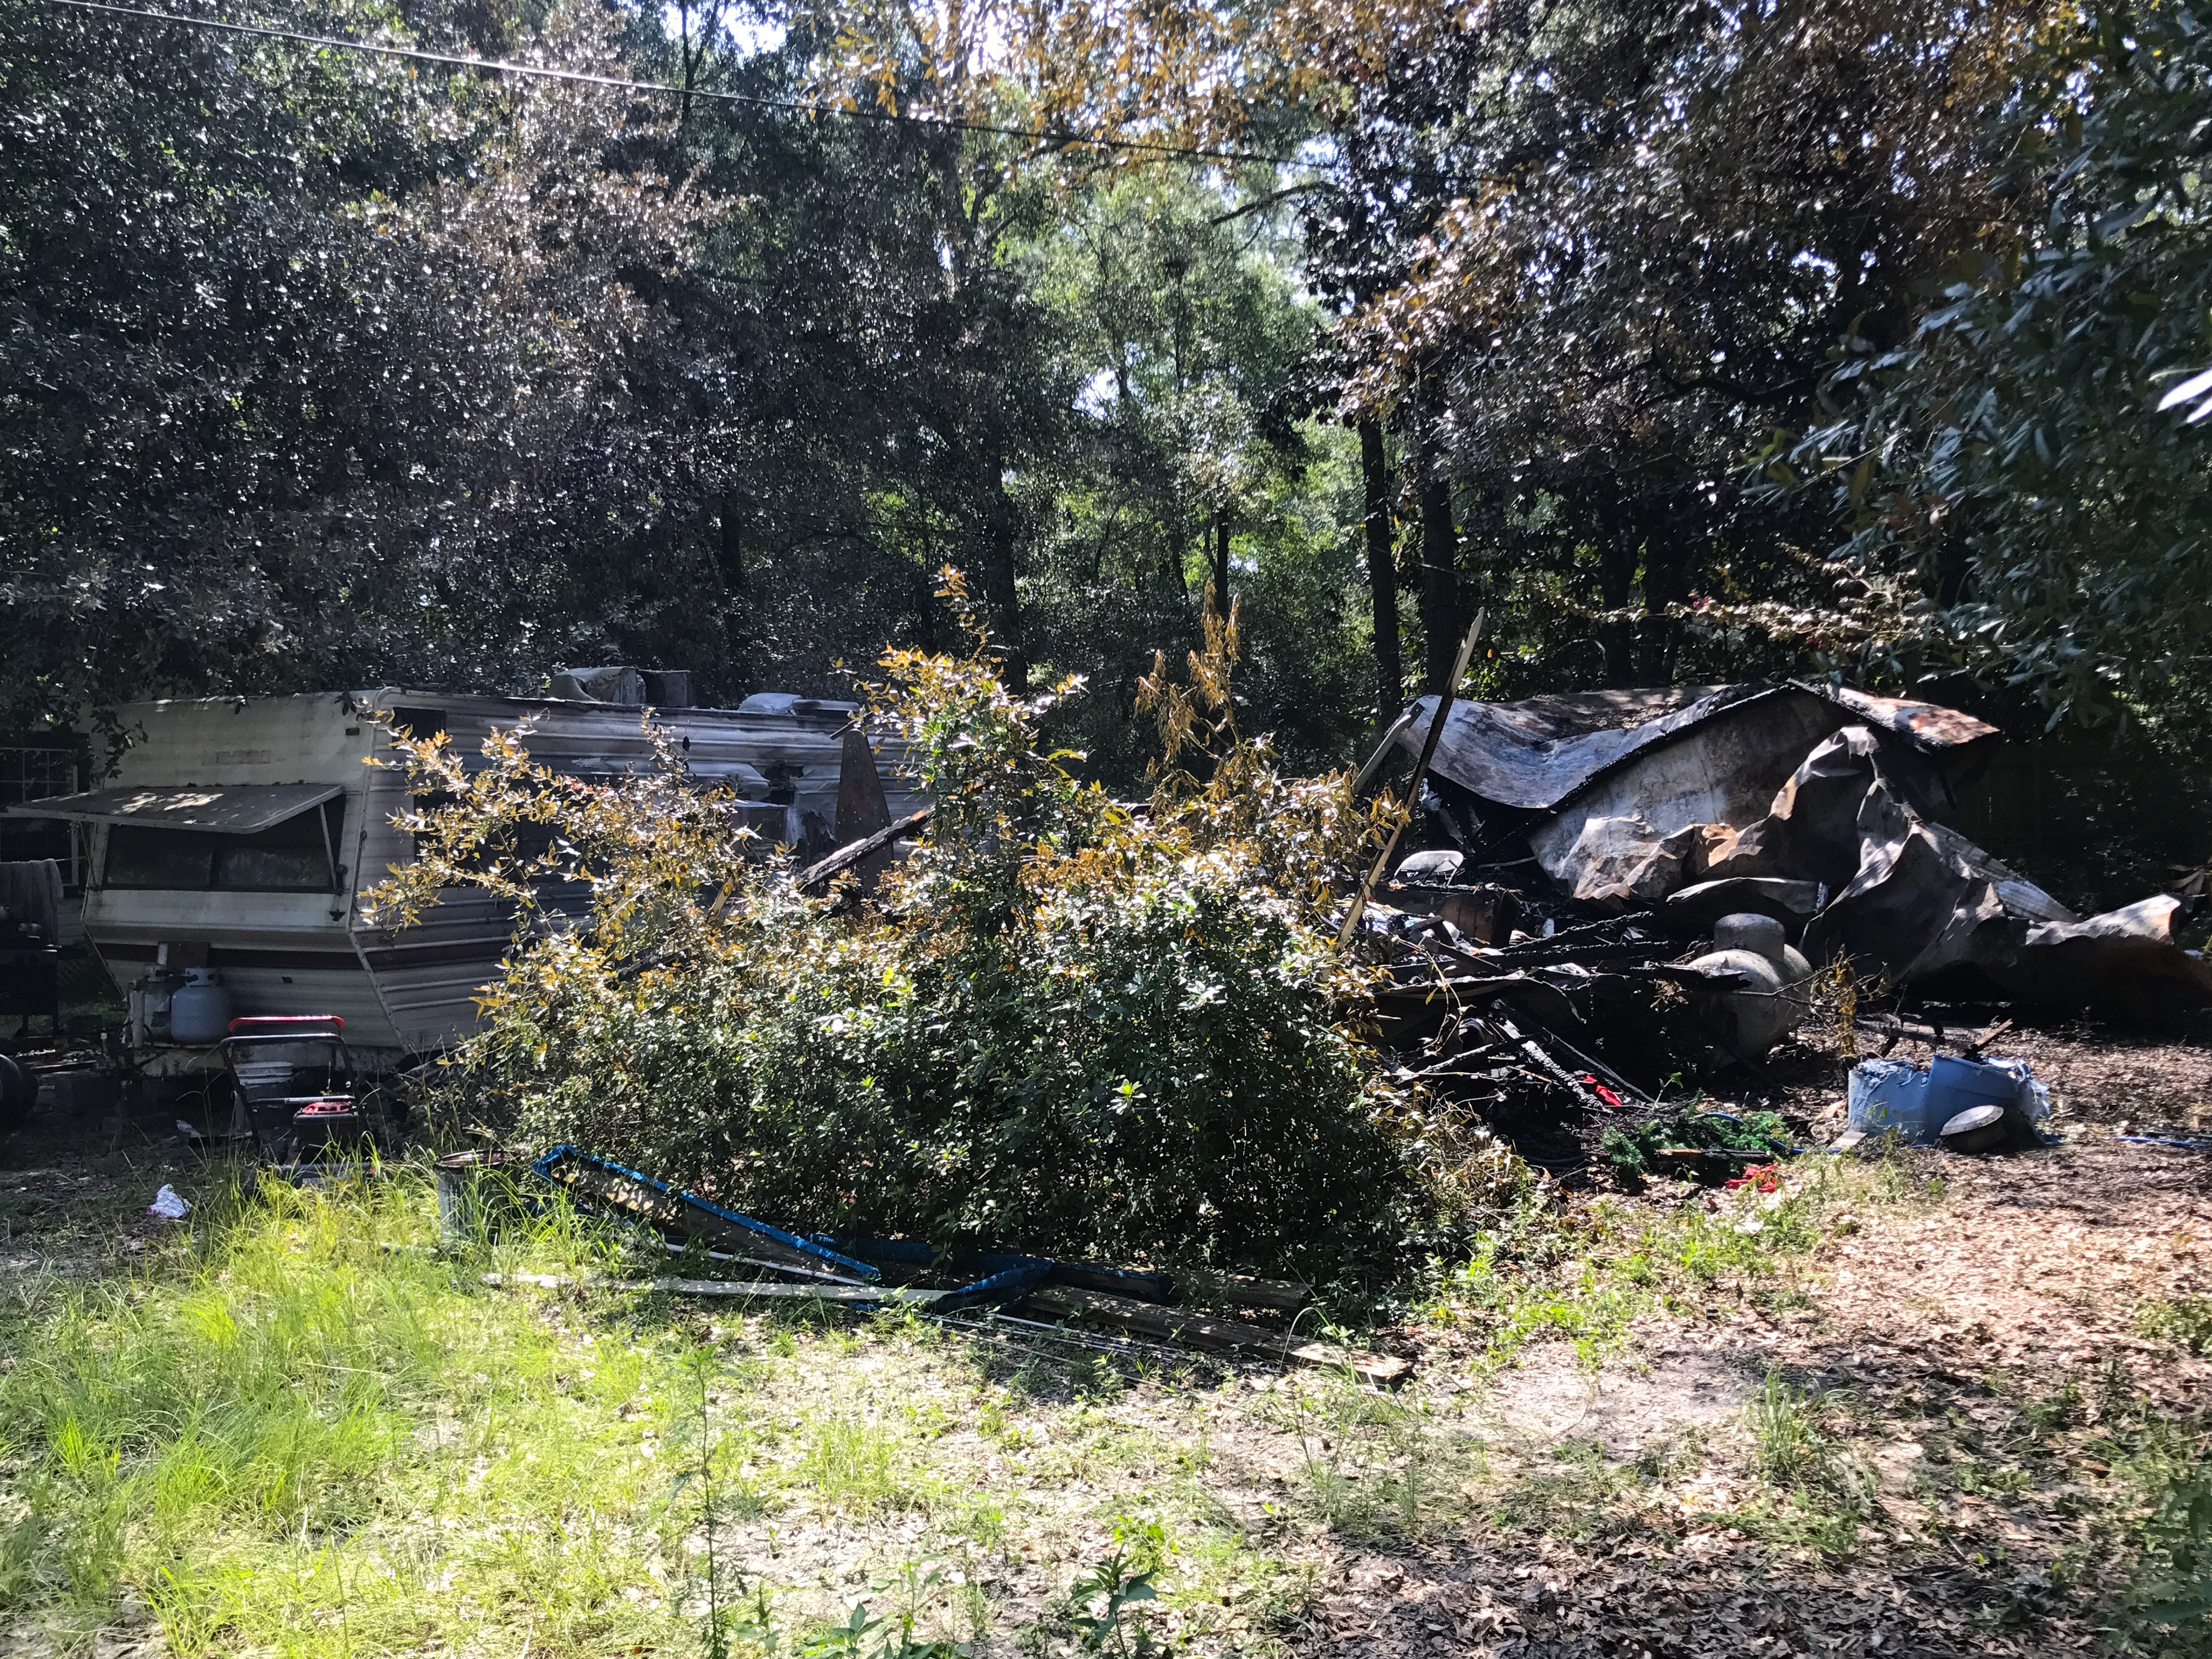 OVERNIGHT STRUCTURE FIRE DESTROYS FREEPORT MOBILE HOME